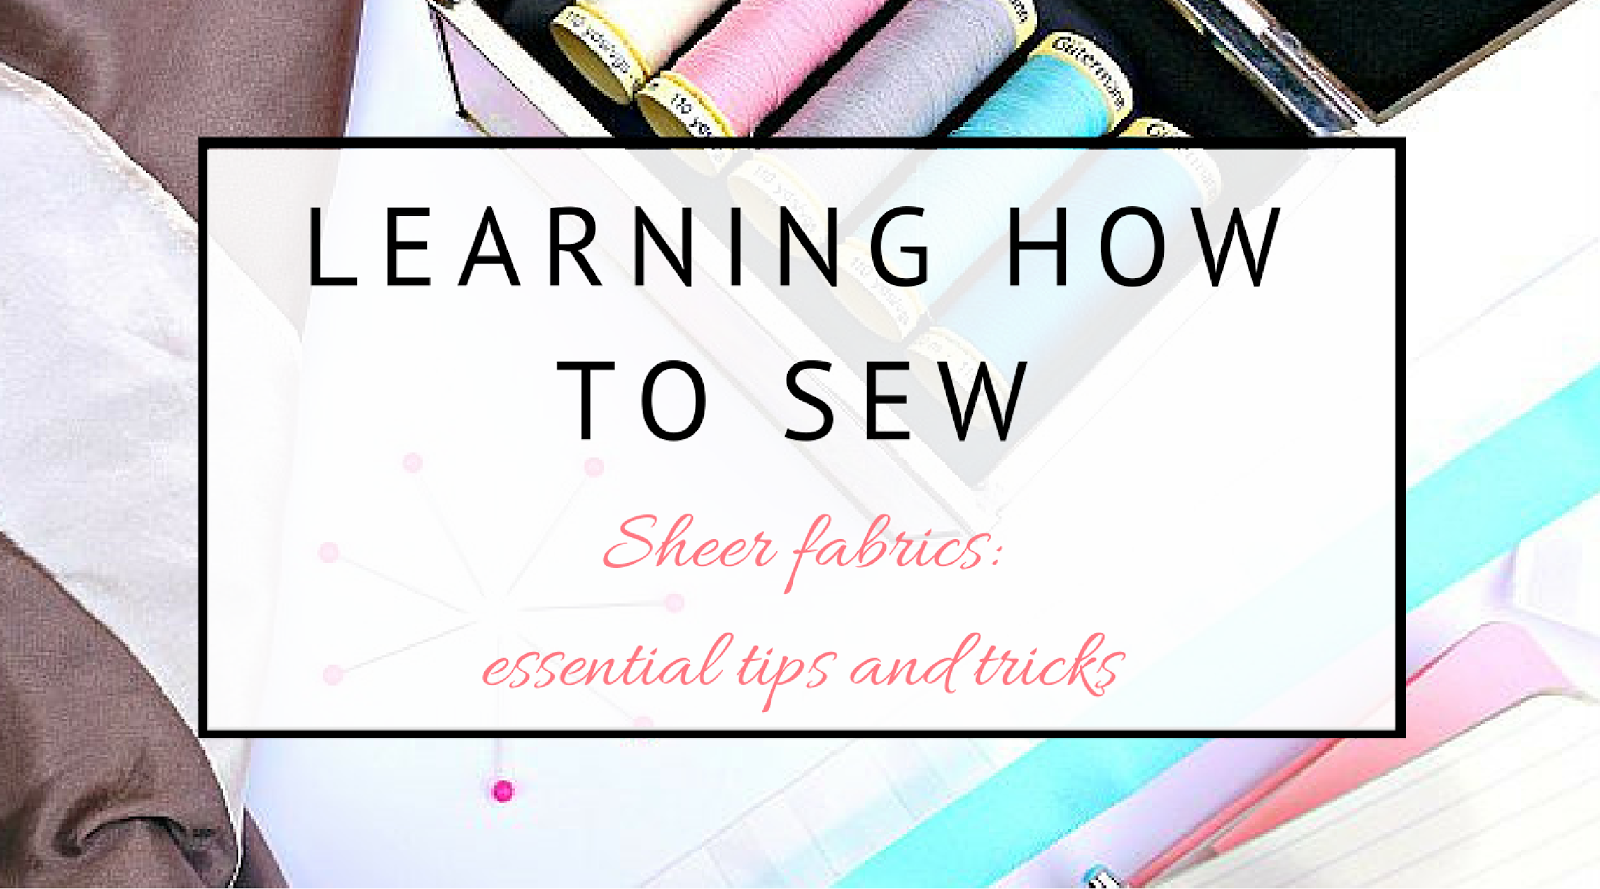 All you need to know to sew with sheer and slippery fabrics.